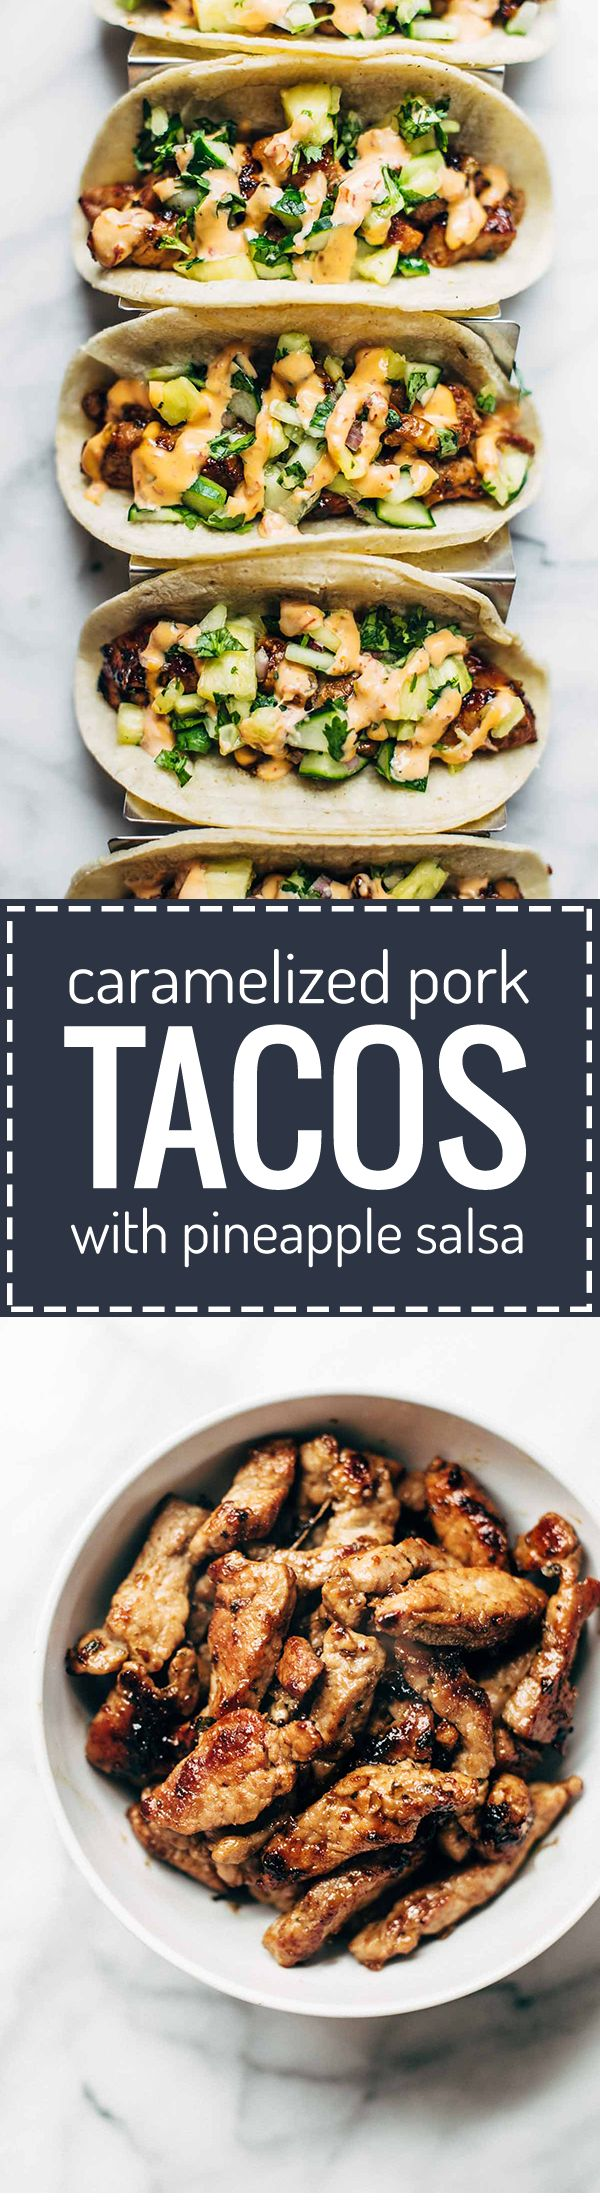 Caramelized Pork Tacos with Pineapple Salsa - topped with sriracha mayo, obviously. ♡ quick and easy to make - LOVE this recipe! | pinchofyum.com